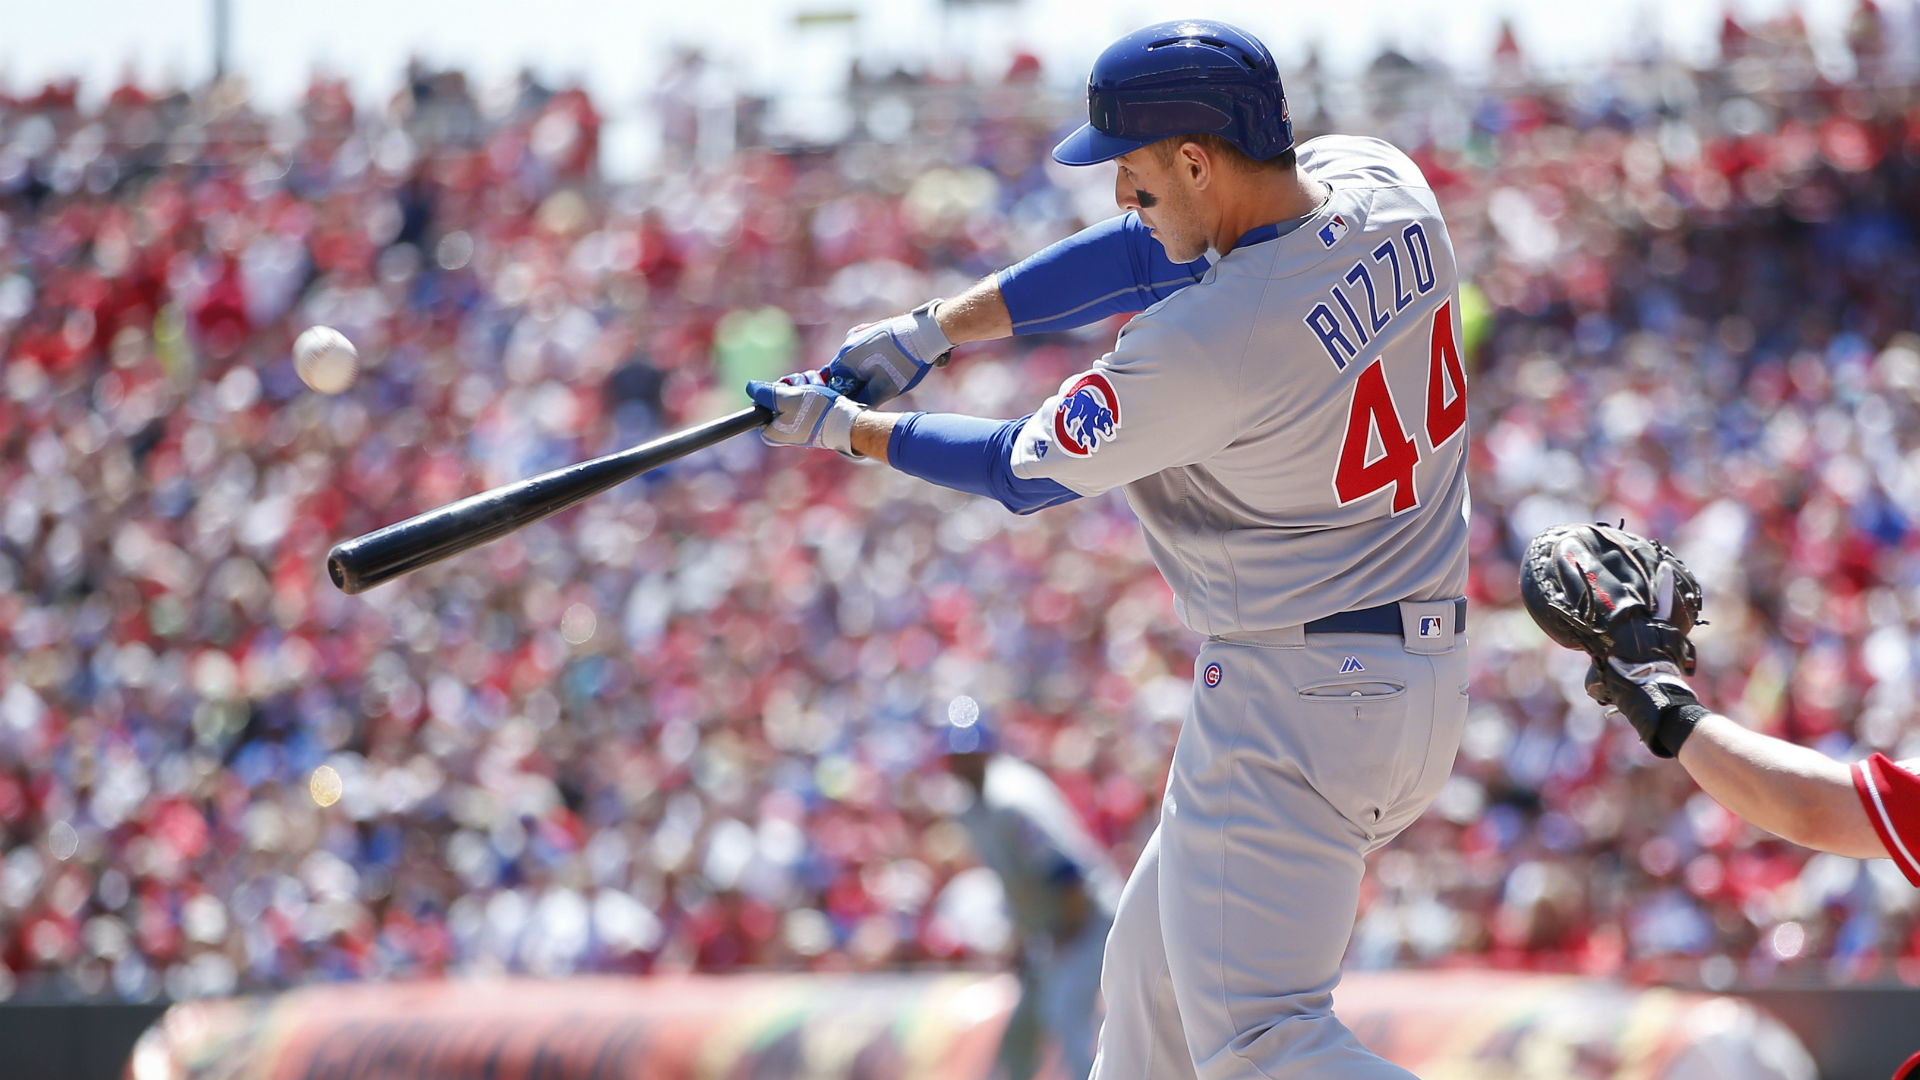 1920x1080 Sunday's MLB rundown: Anthony Rizzo, Jason Heyward have Cubs rolling early  | Other Sports | Sporting News